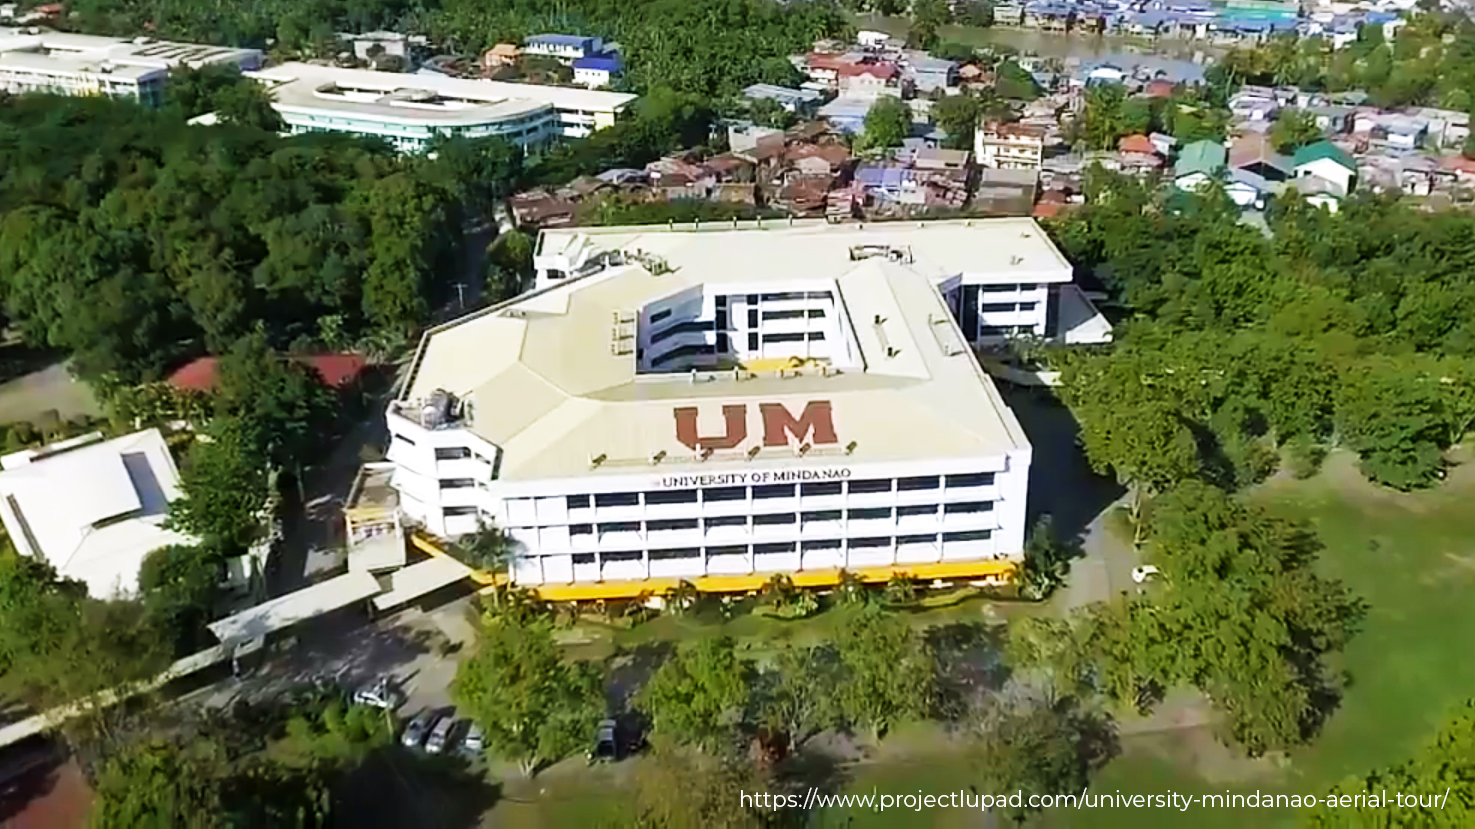 aerial shot of the university of mindanao campus